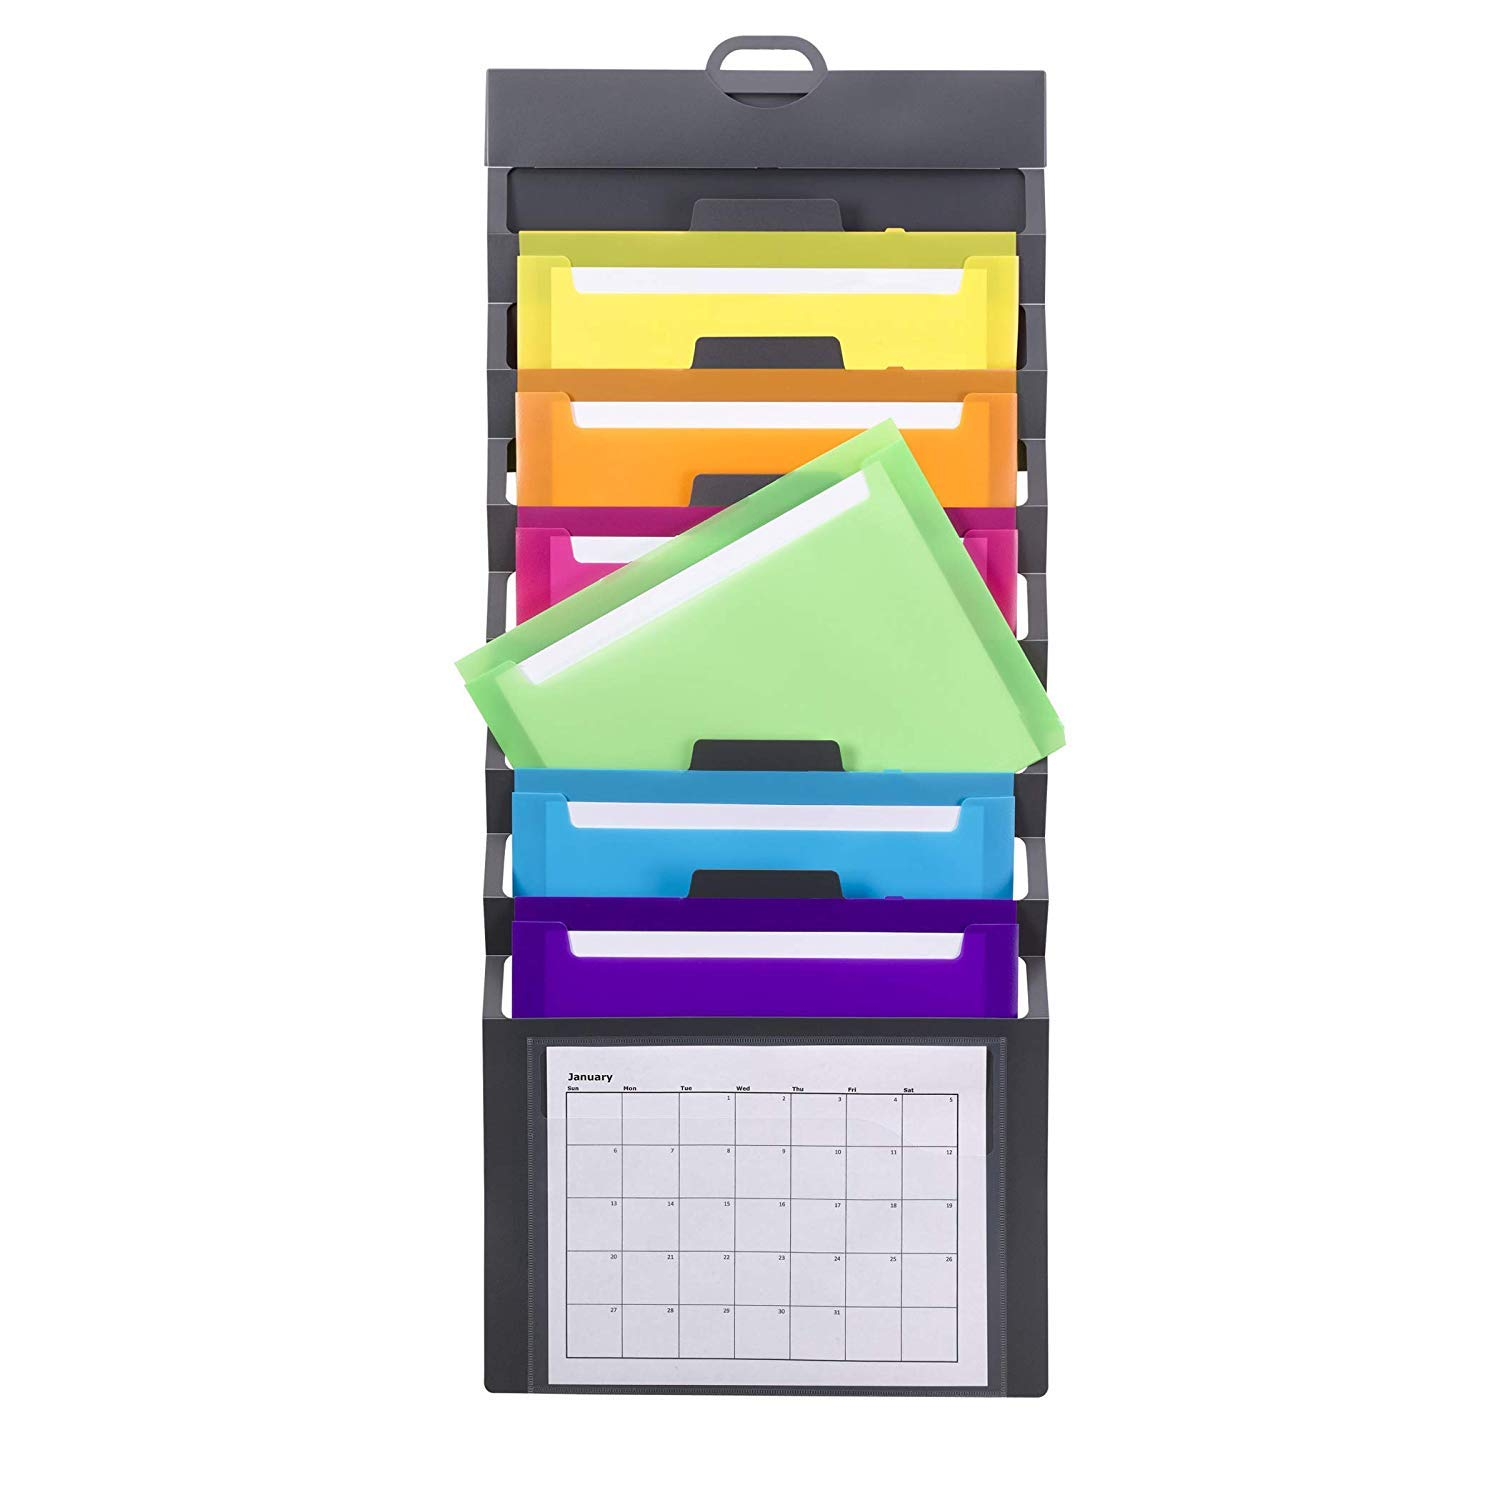 Smead Cascading Wall Organizer, 6 Pockets, Letter Size, Gray/Bright Pockets (92060) by Smead